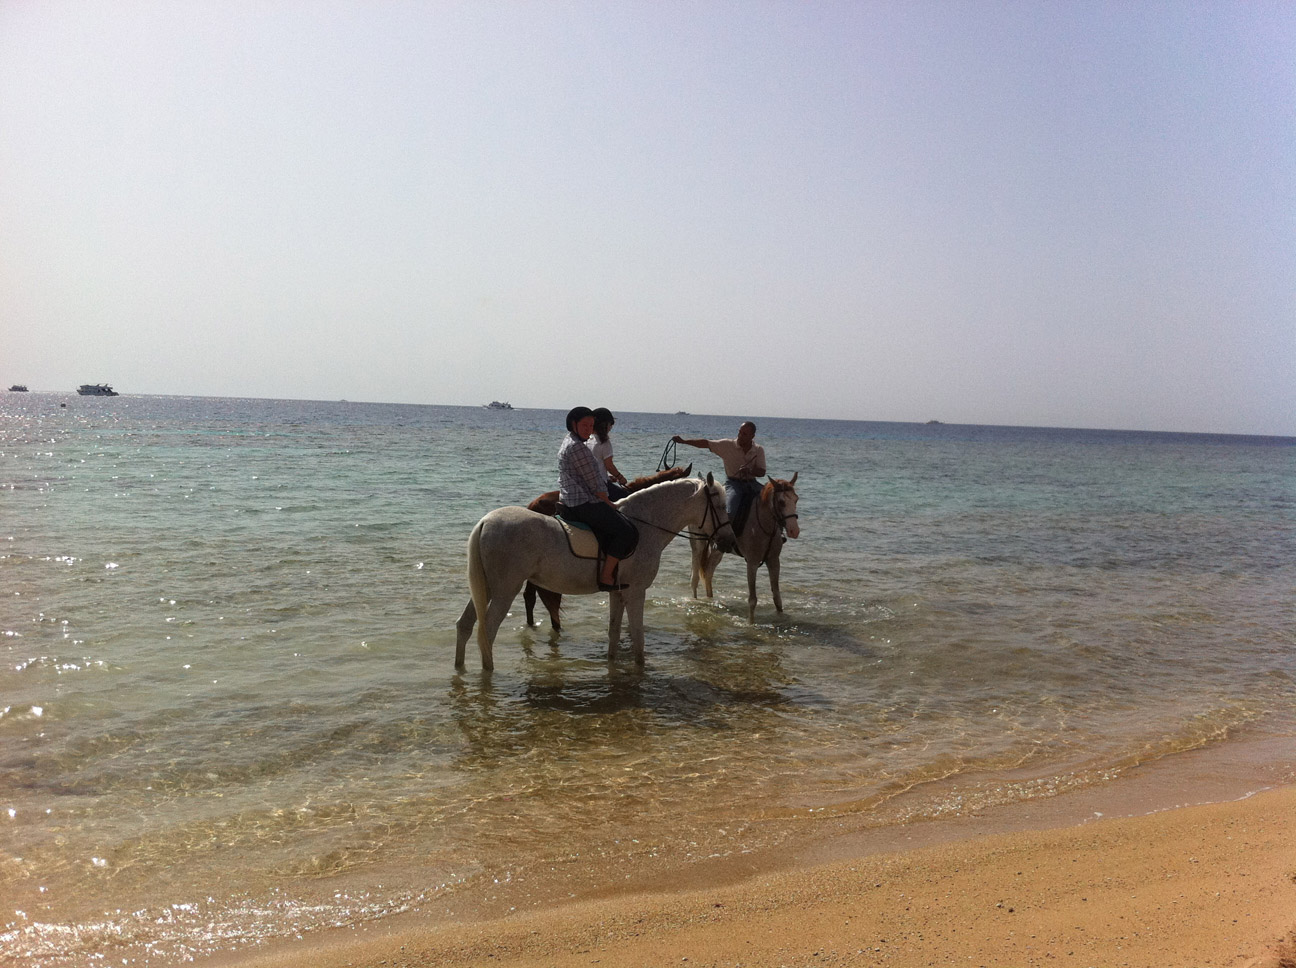 Riding an Arabian horse along Sharm el Sheikh beaches